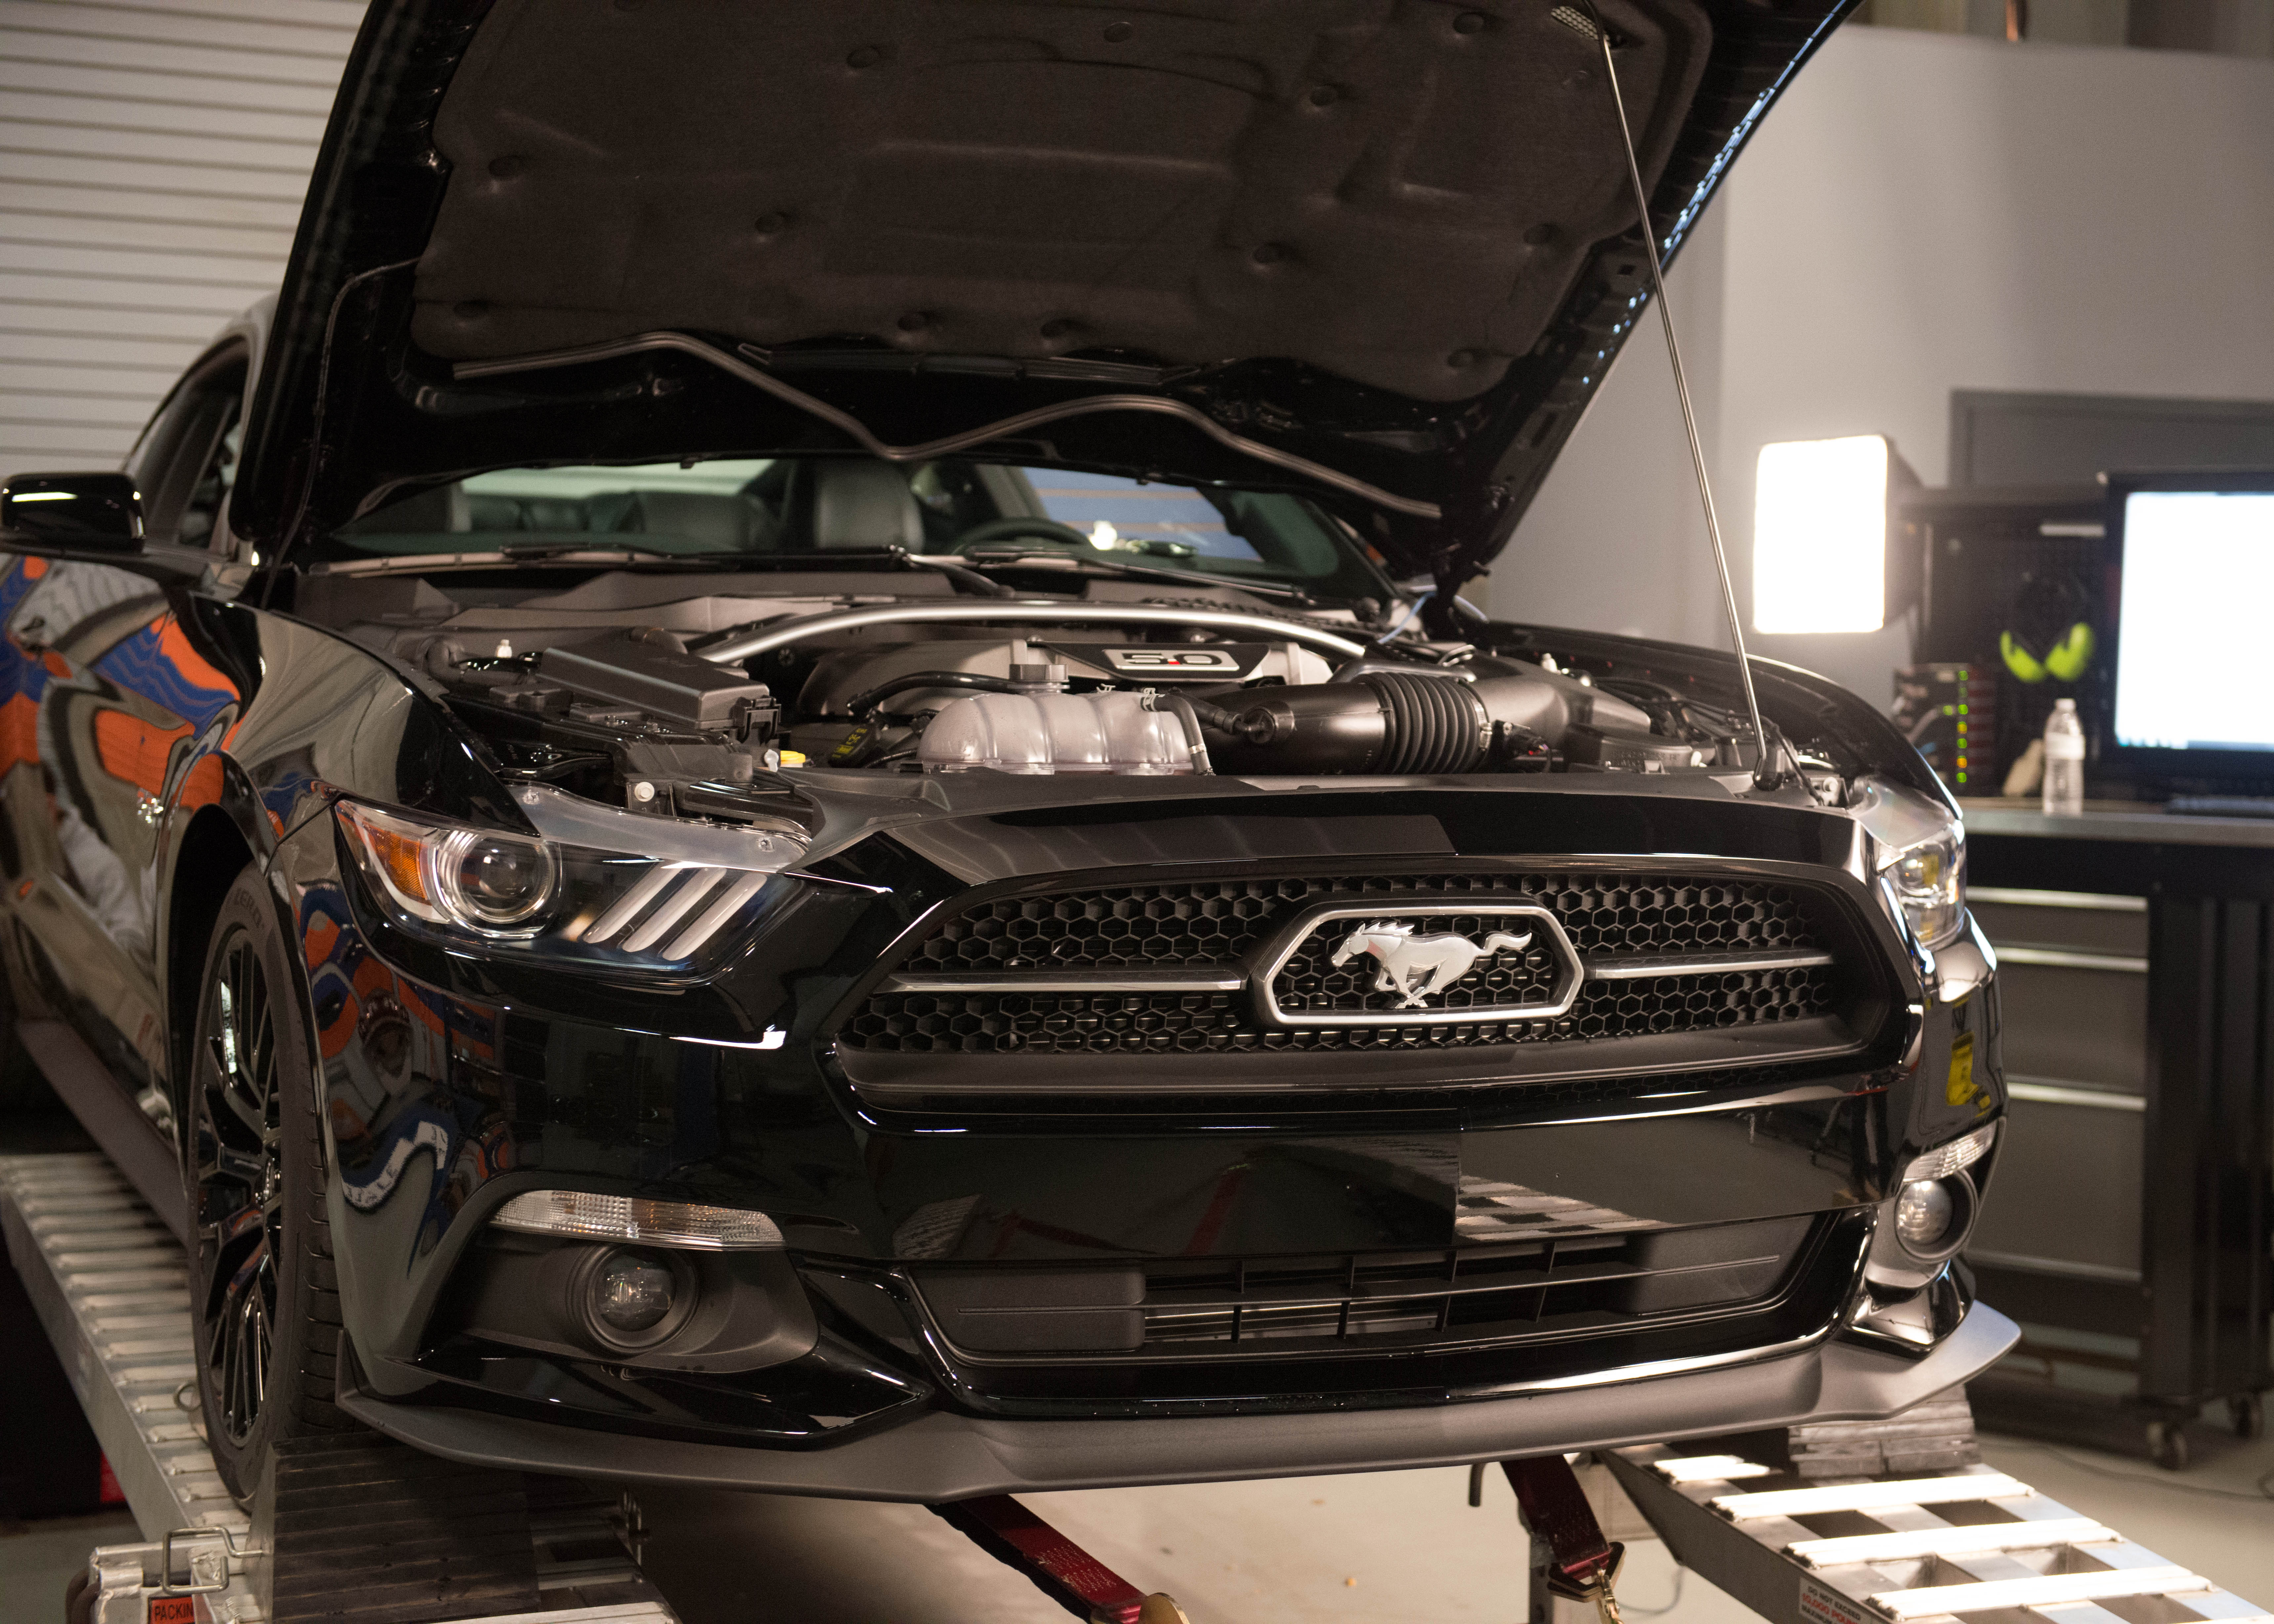 When Should I Upgrade the Throttle Body on My 2015 Mustang